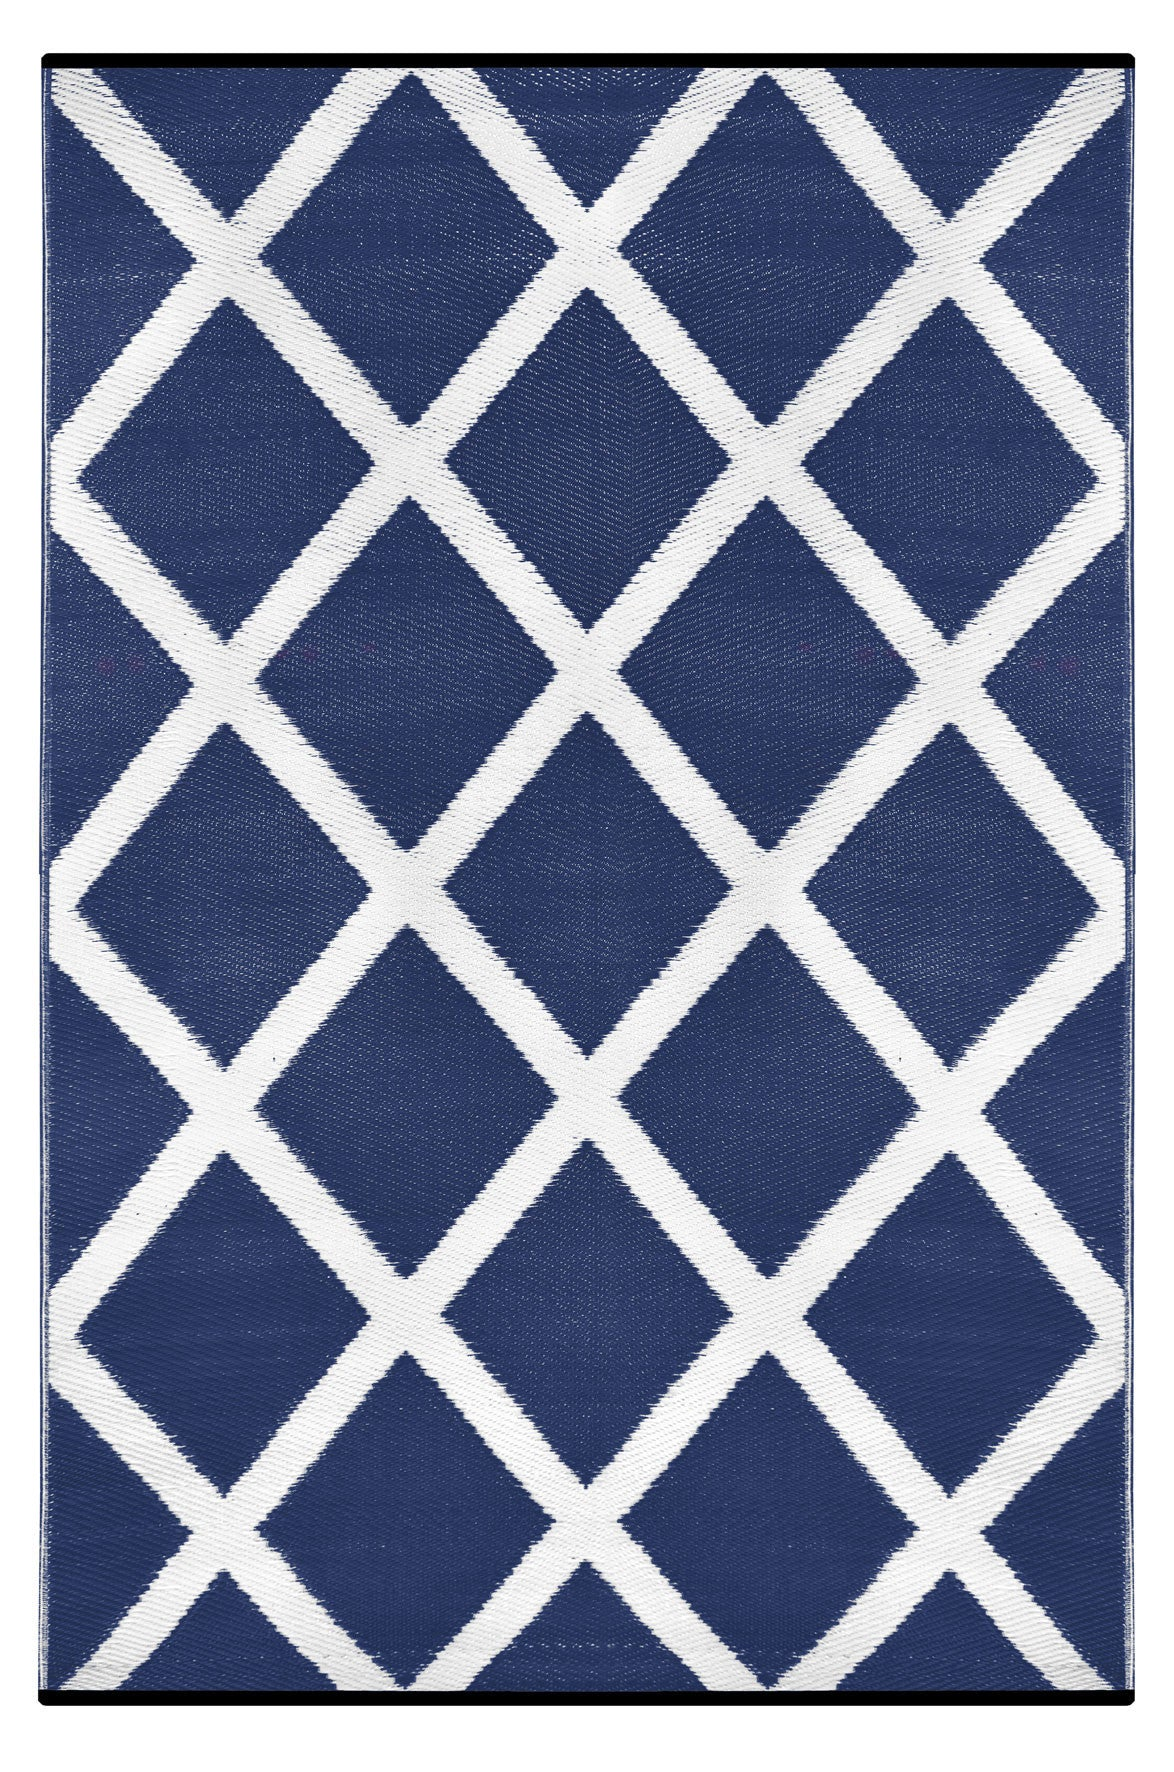 Navy blue and white rug roselawnlutheran for Blue and white carpet